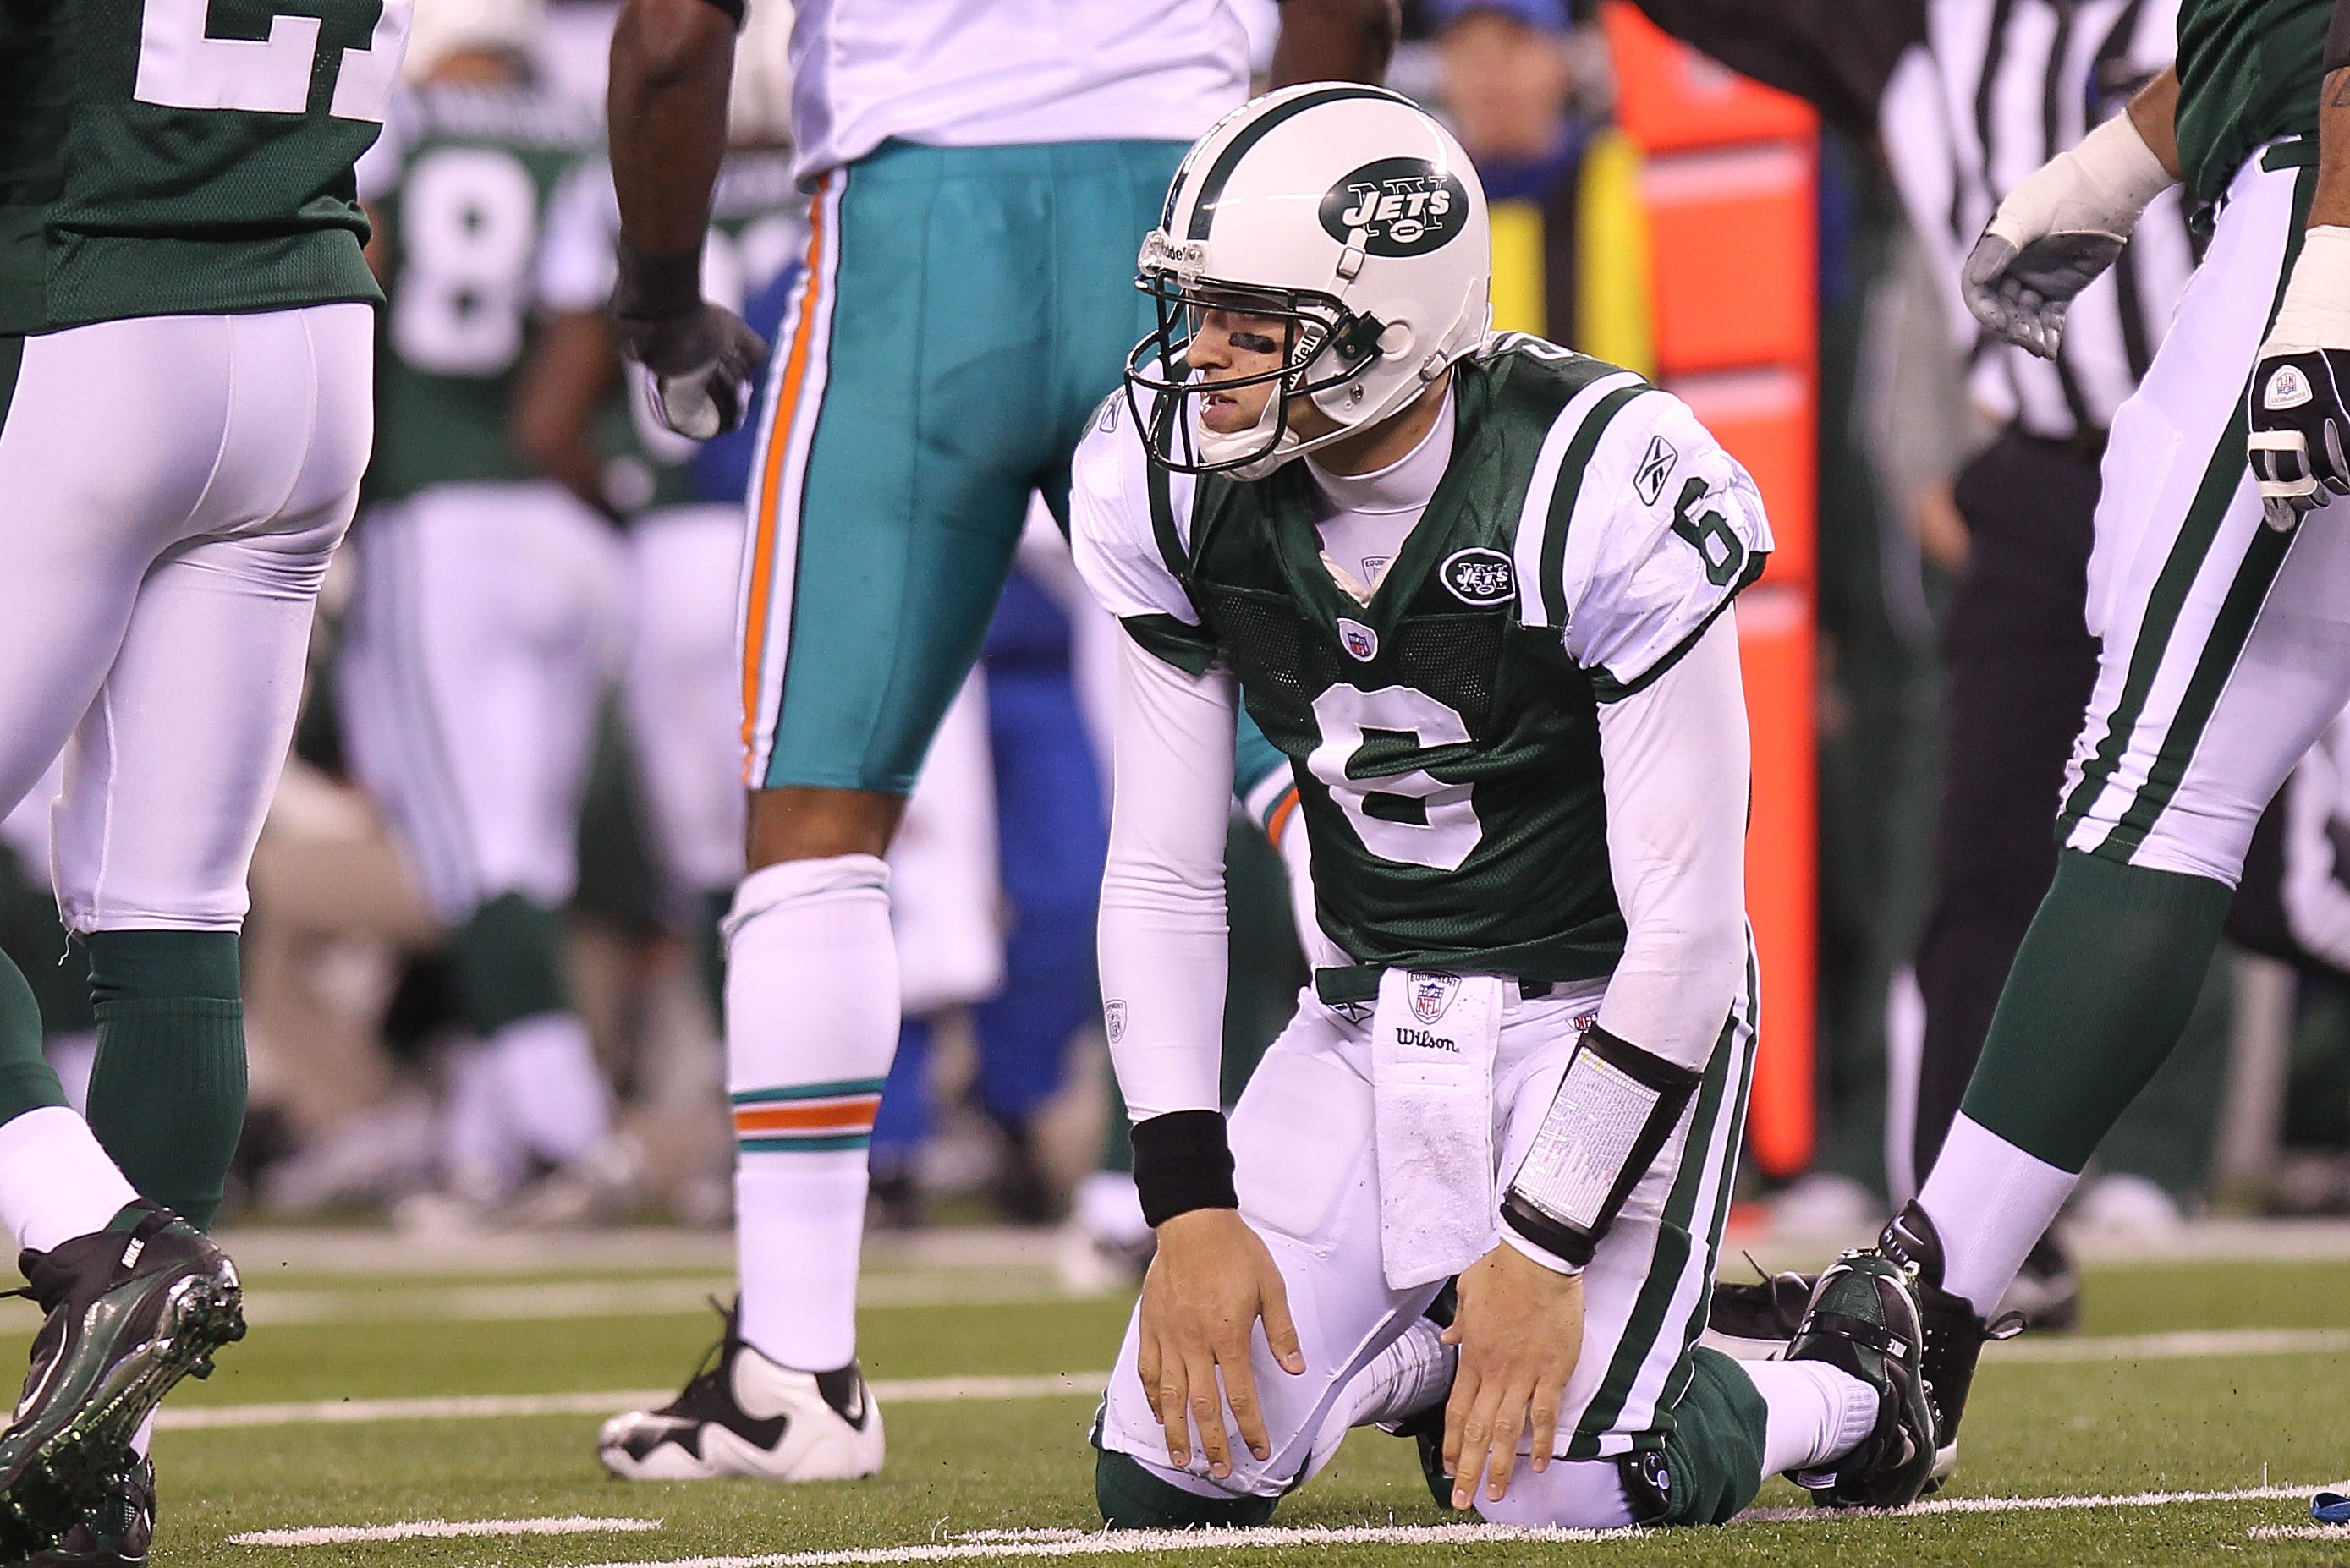 EAST RUTHERFORD, NJ - DECEMBER 12:  Mark Sanchez #6 of the New York Jets picks himself up after an incomplete pass against the Miami Dolphins at New Meadowlands Stadium on December 12, 2010 in East Rutherford, New Jersey.  (Photo by Nick Laham/Getty Image